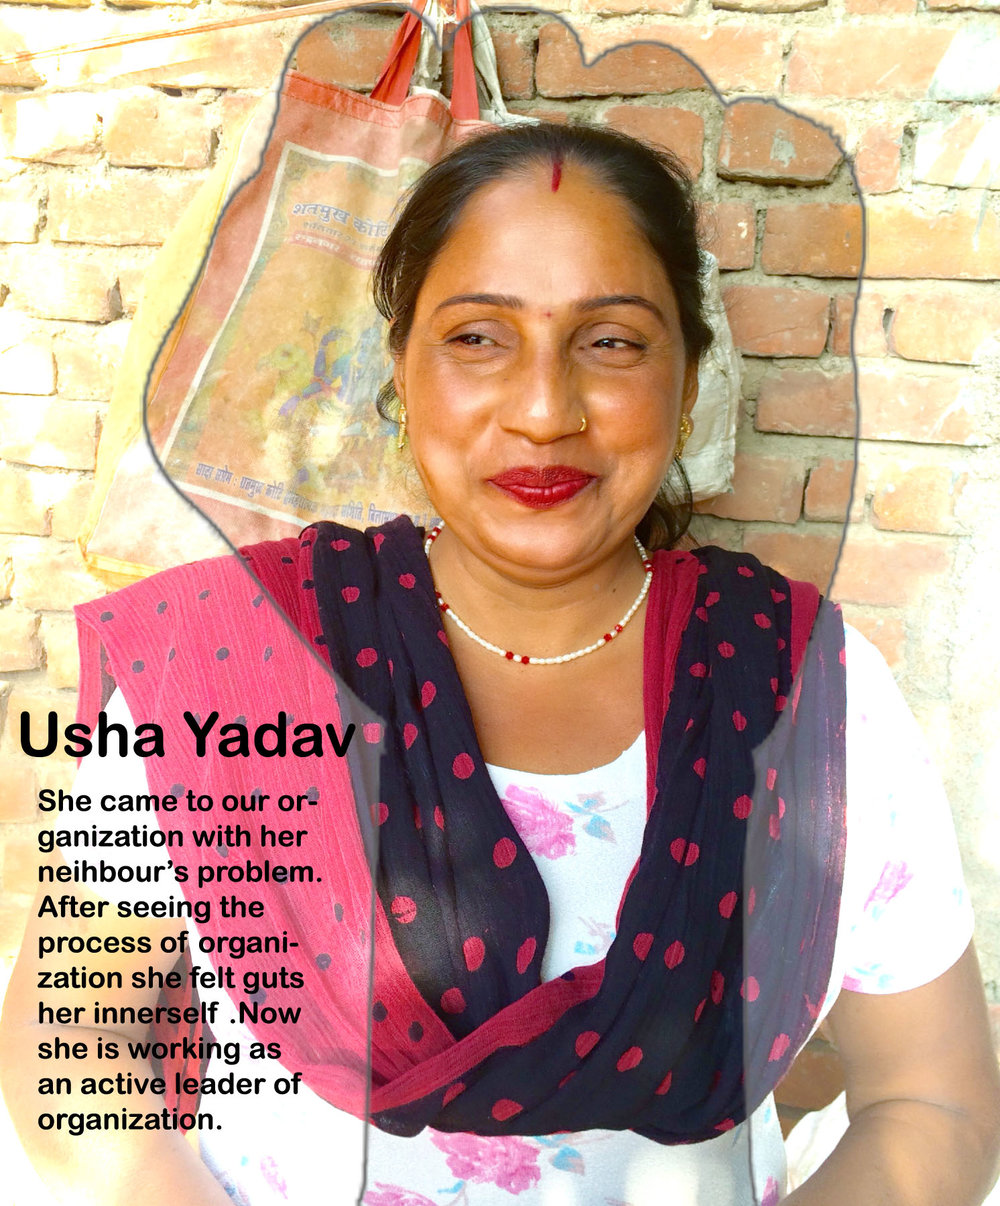 Usha yadav woman human right defender--.jpg